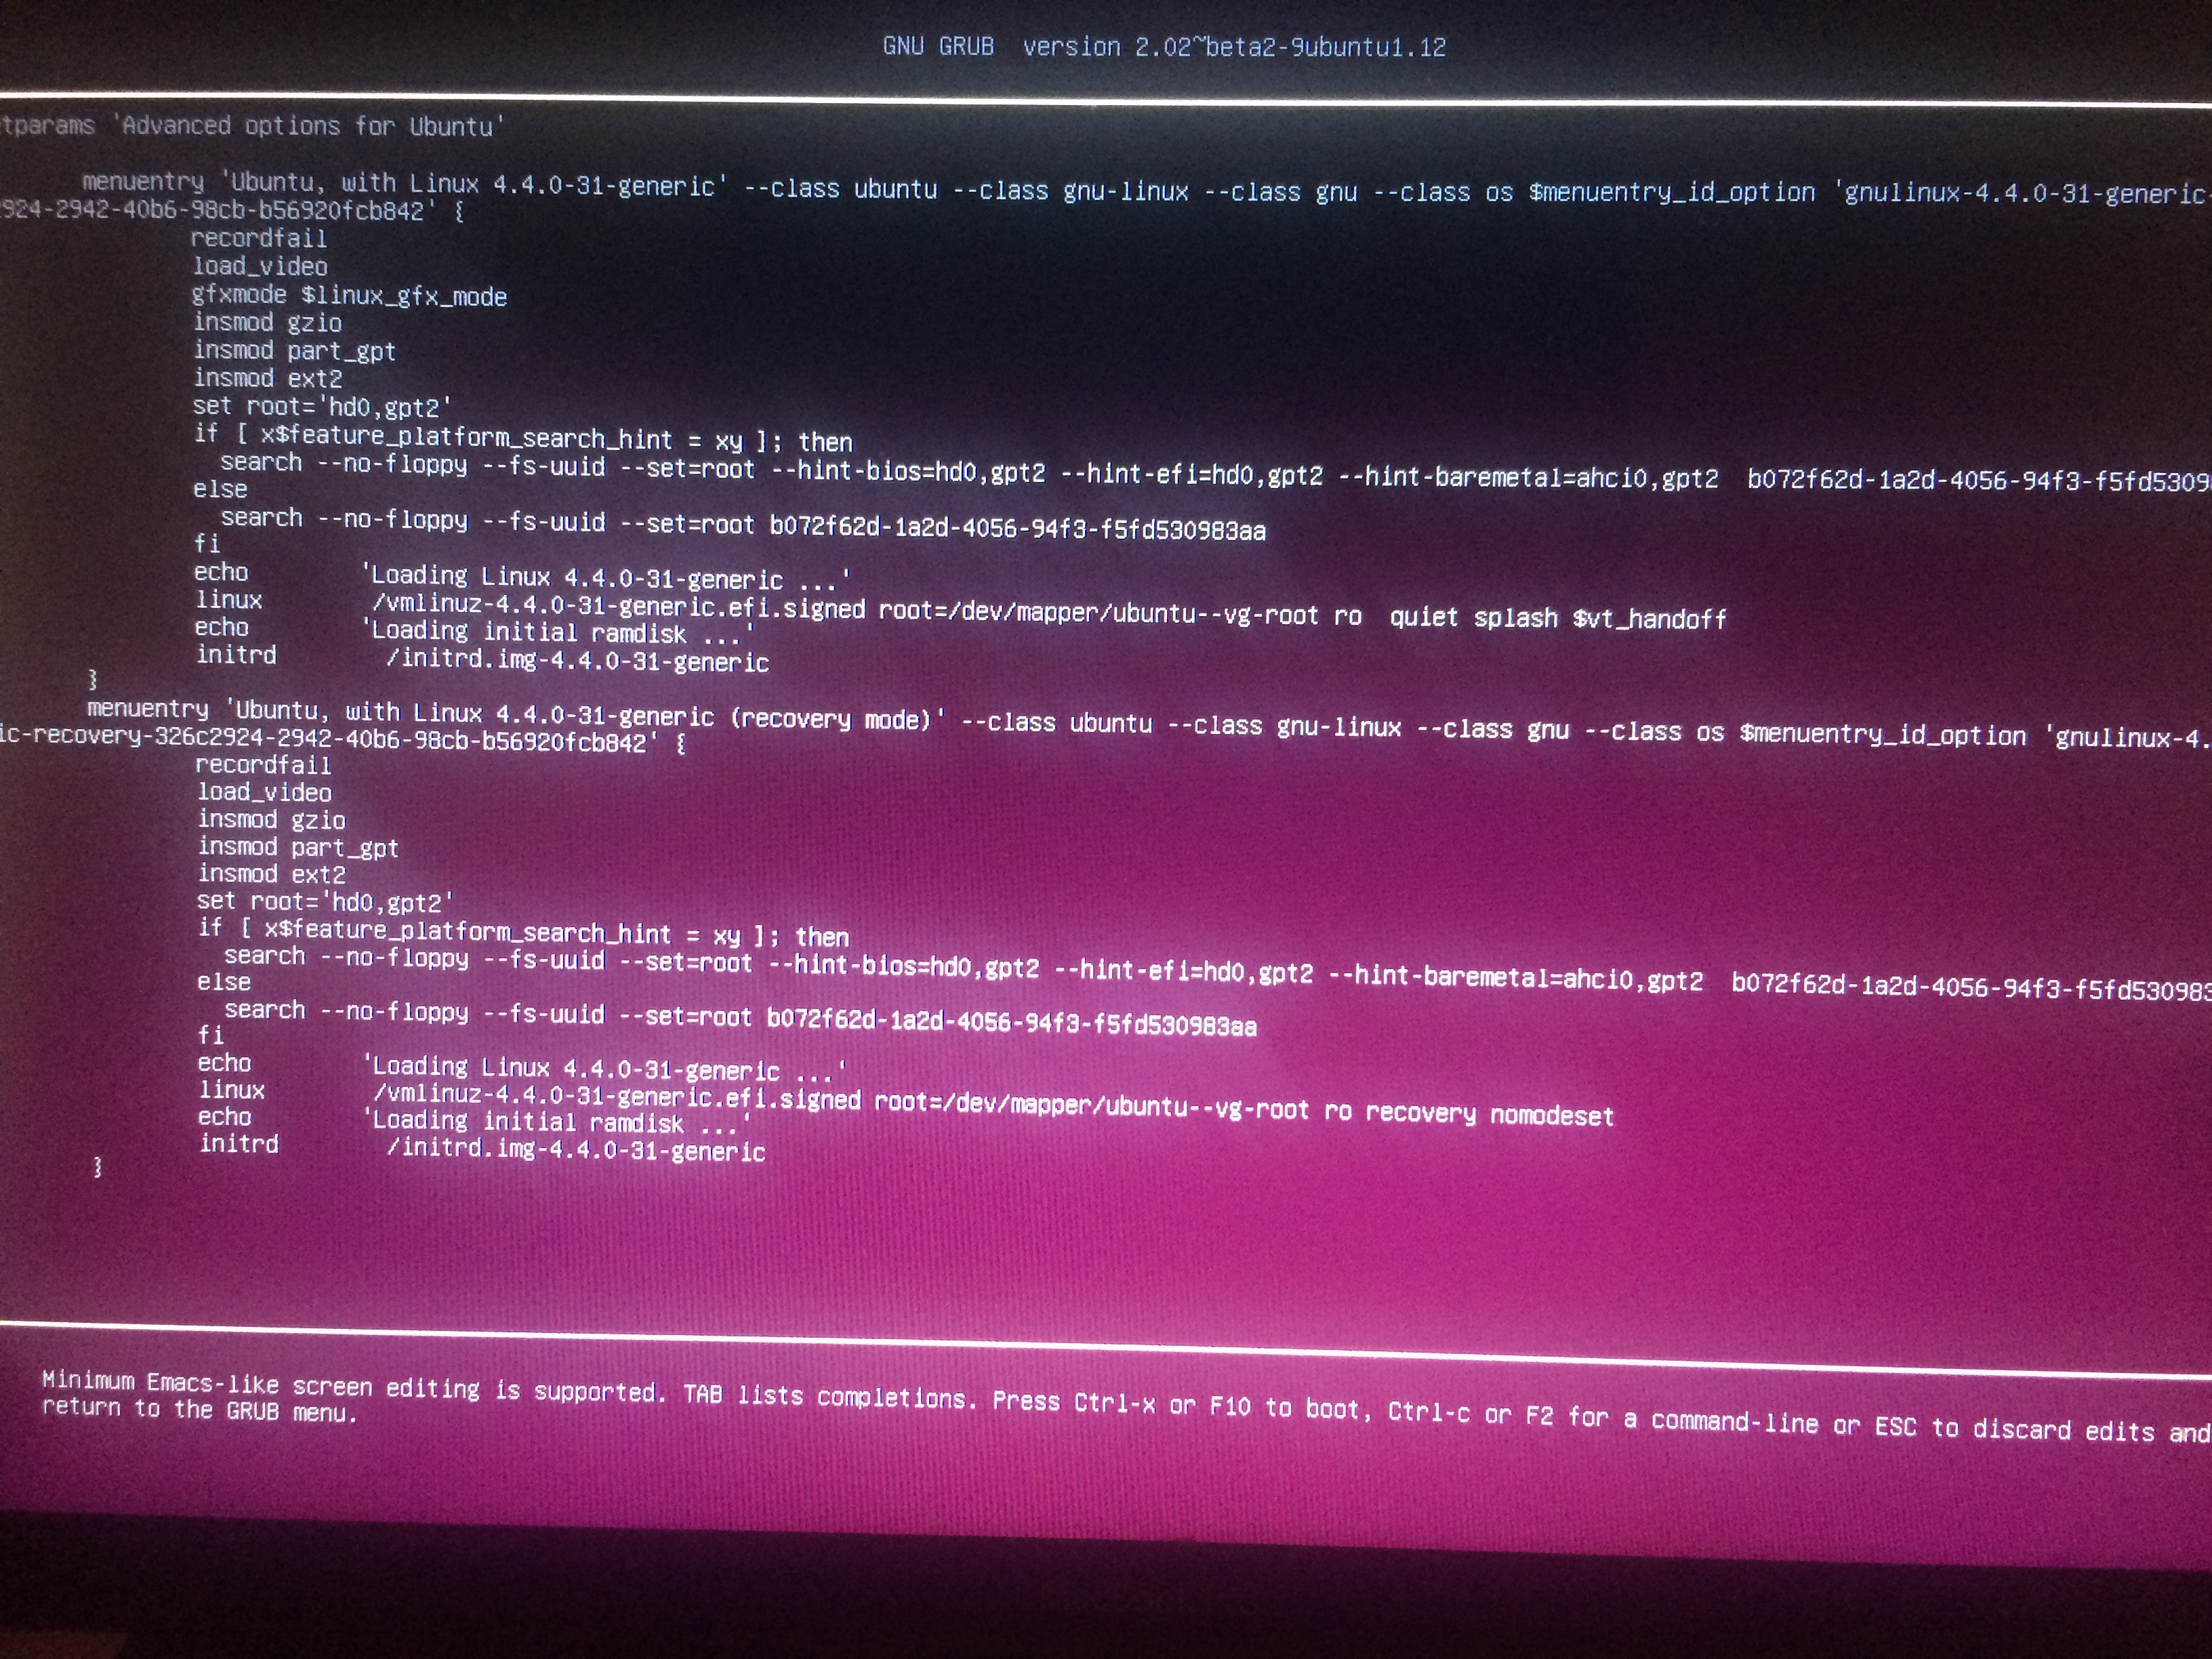 Resolved - Force 2011 MacBook Pro 8,2 with failed AMD GPU to